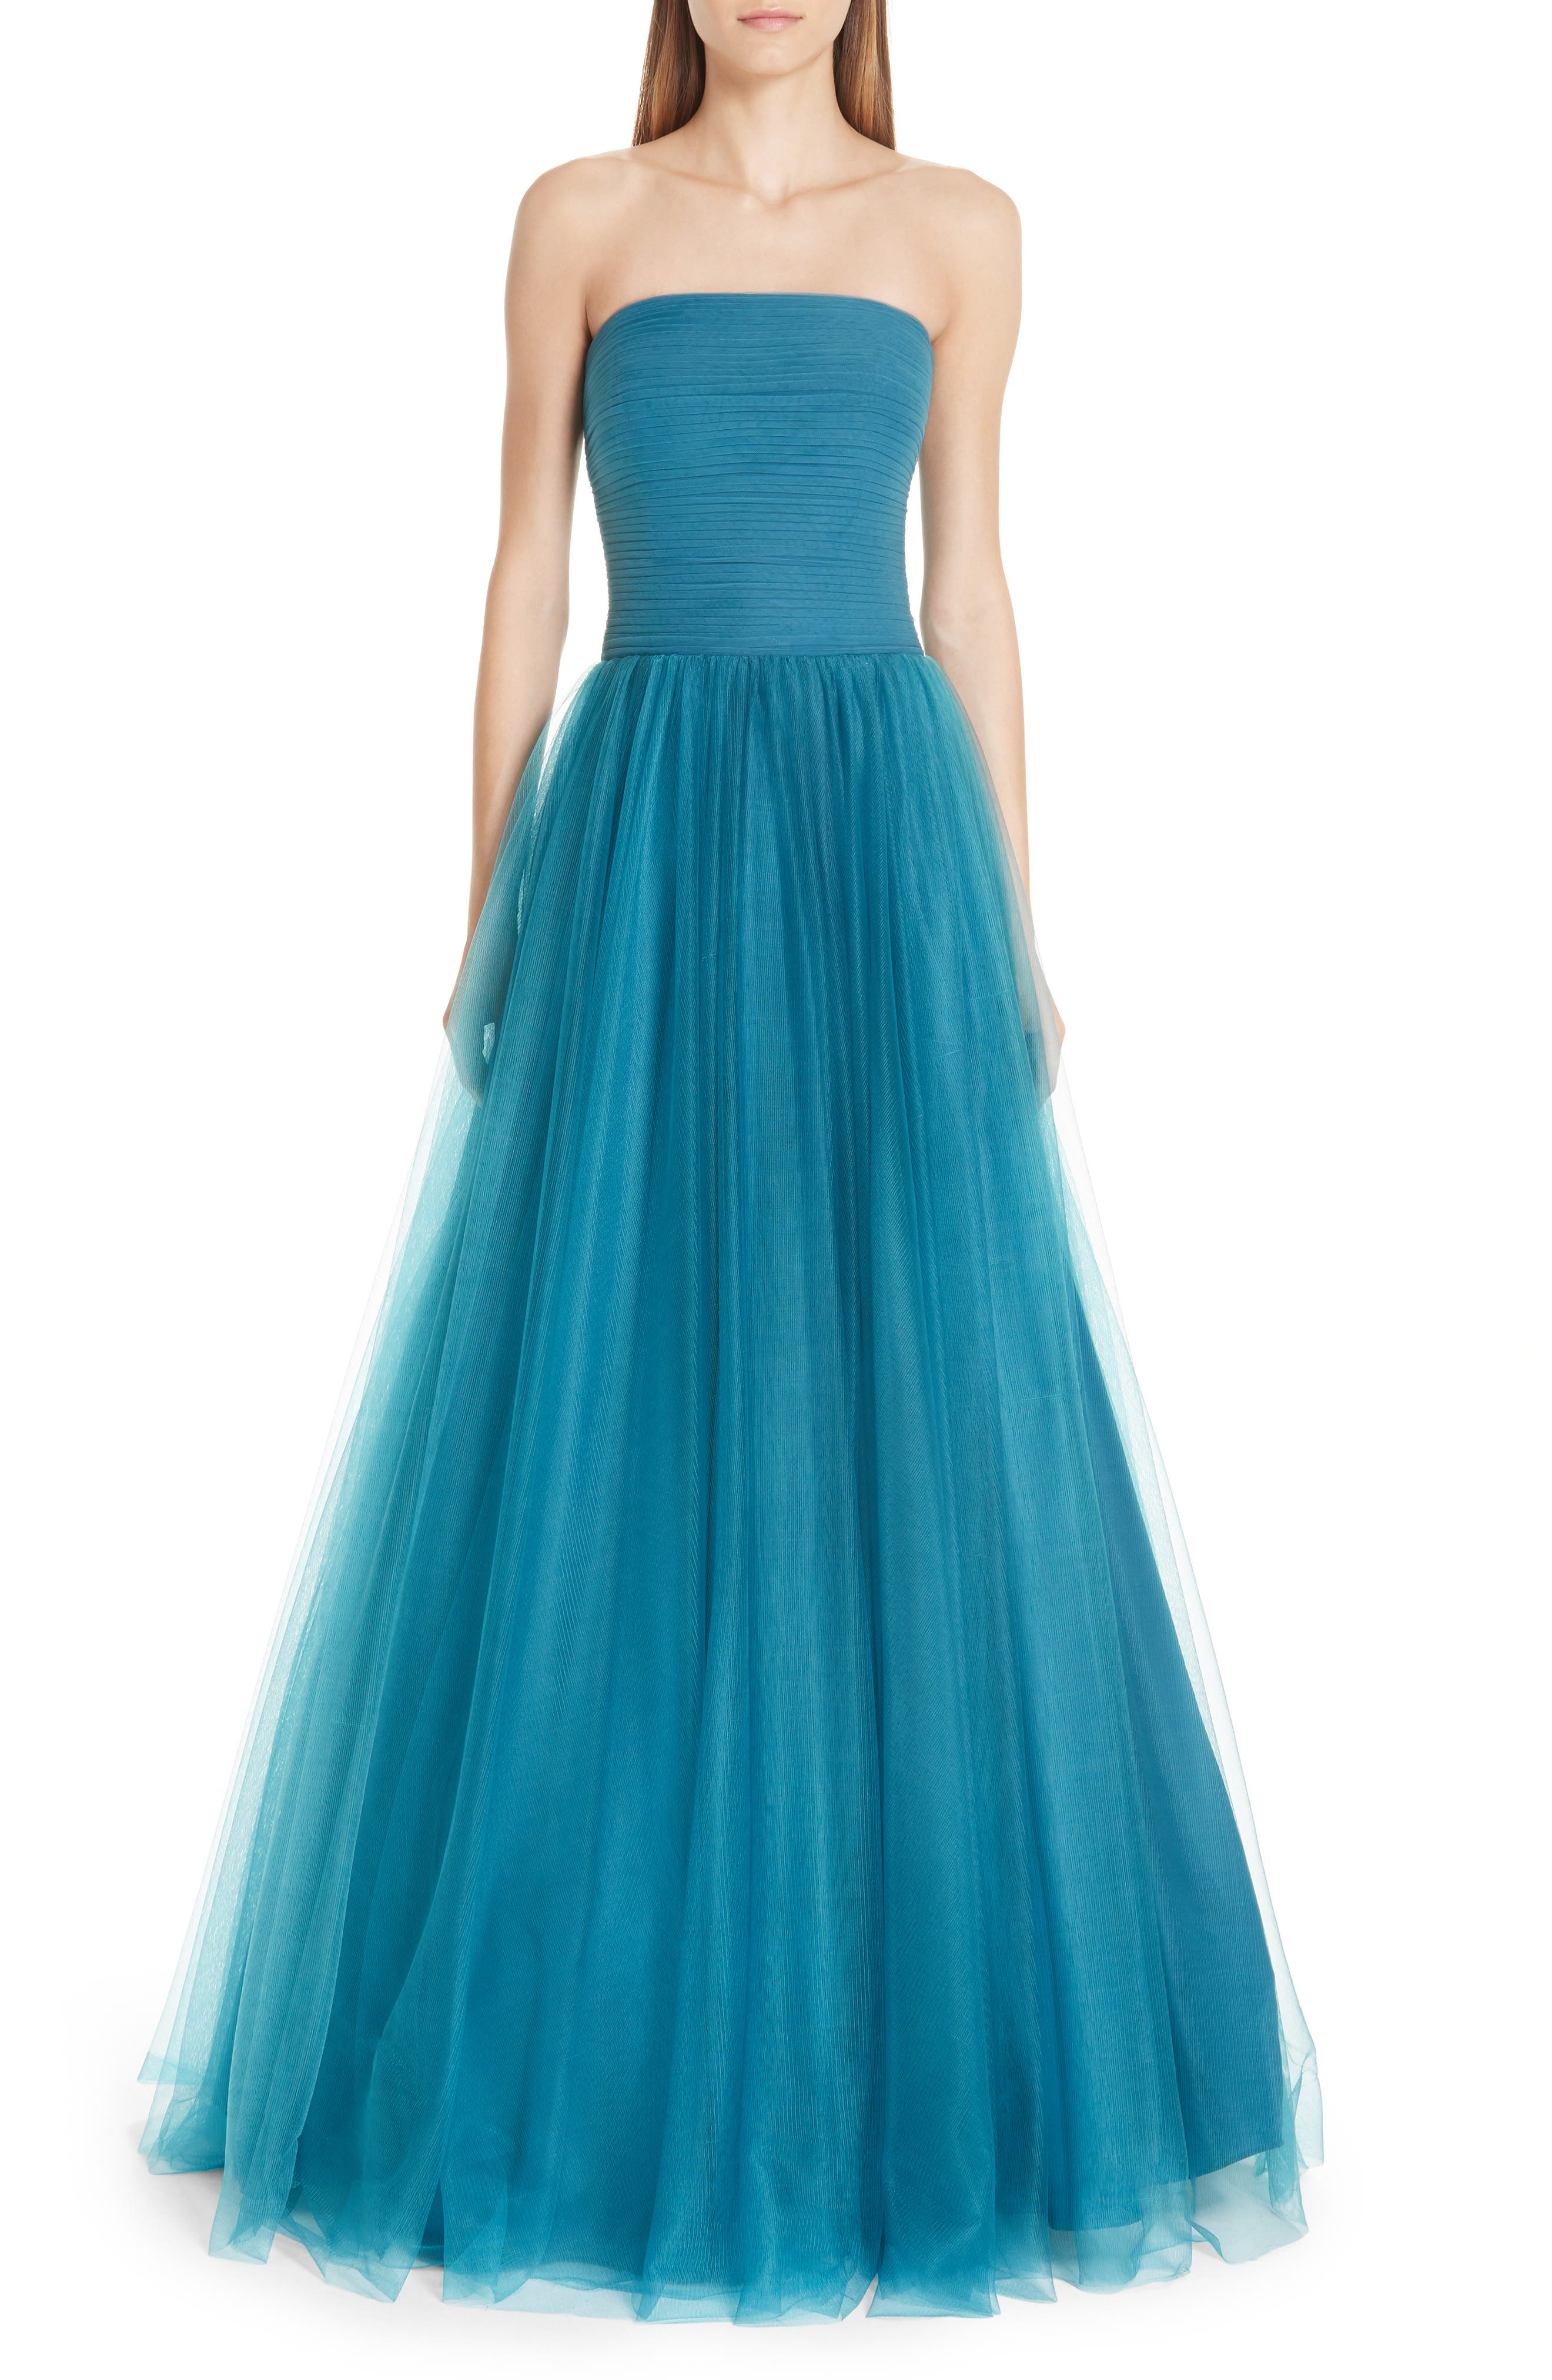 BADGLEY MISCHKA Collection Strapless Tulle Ballgown in Peacock